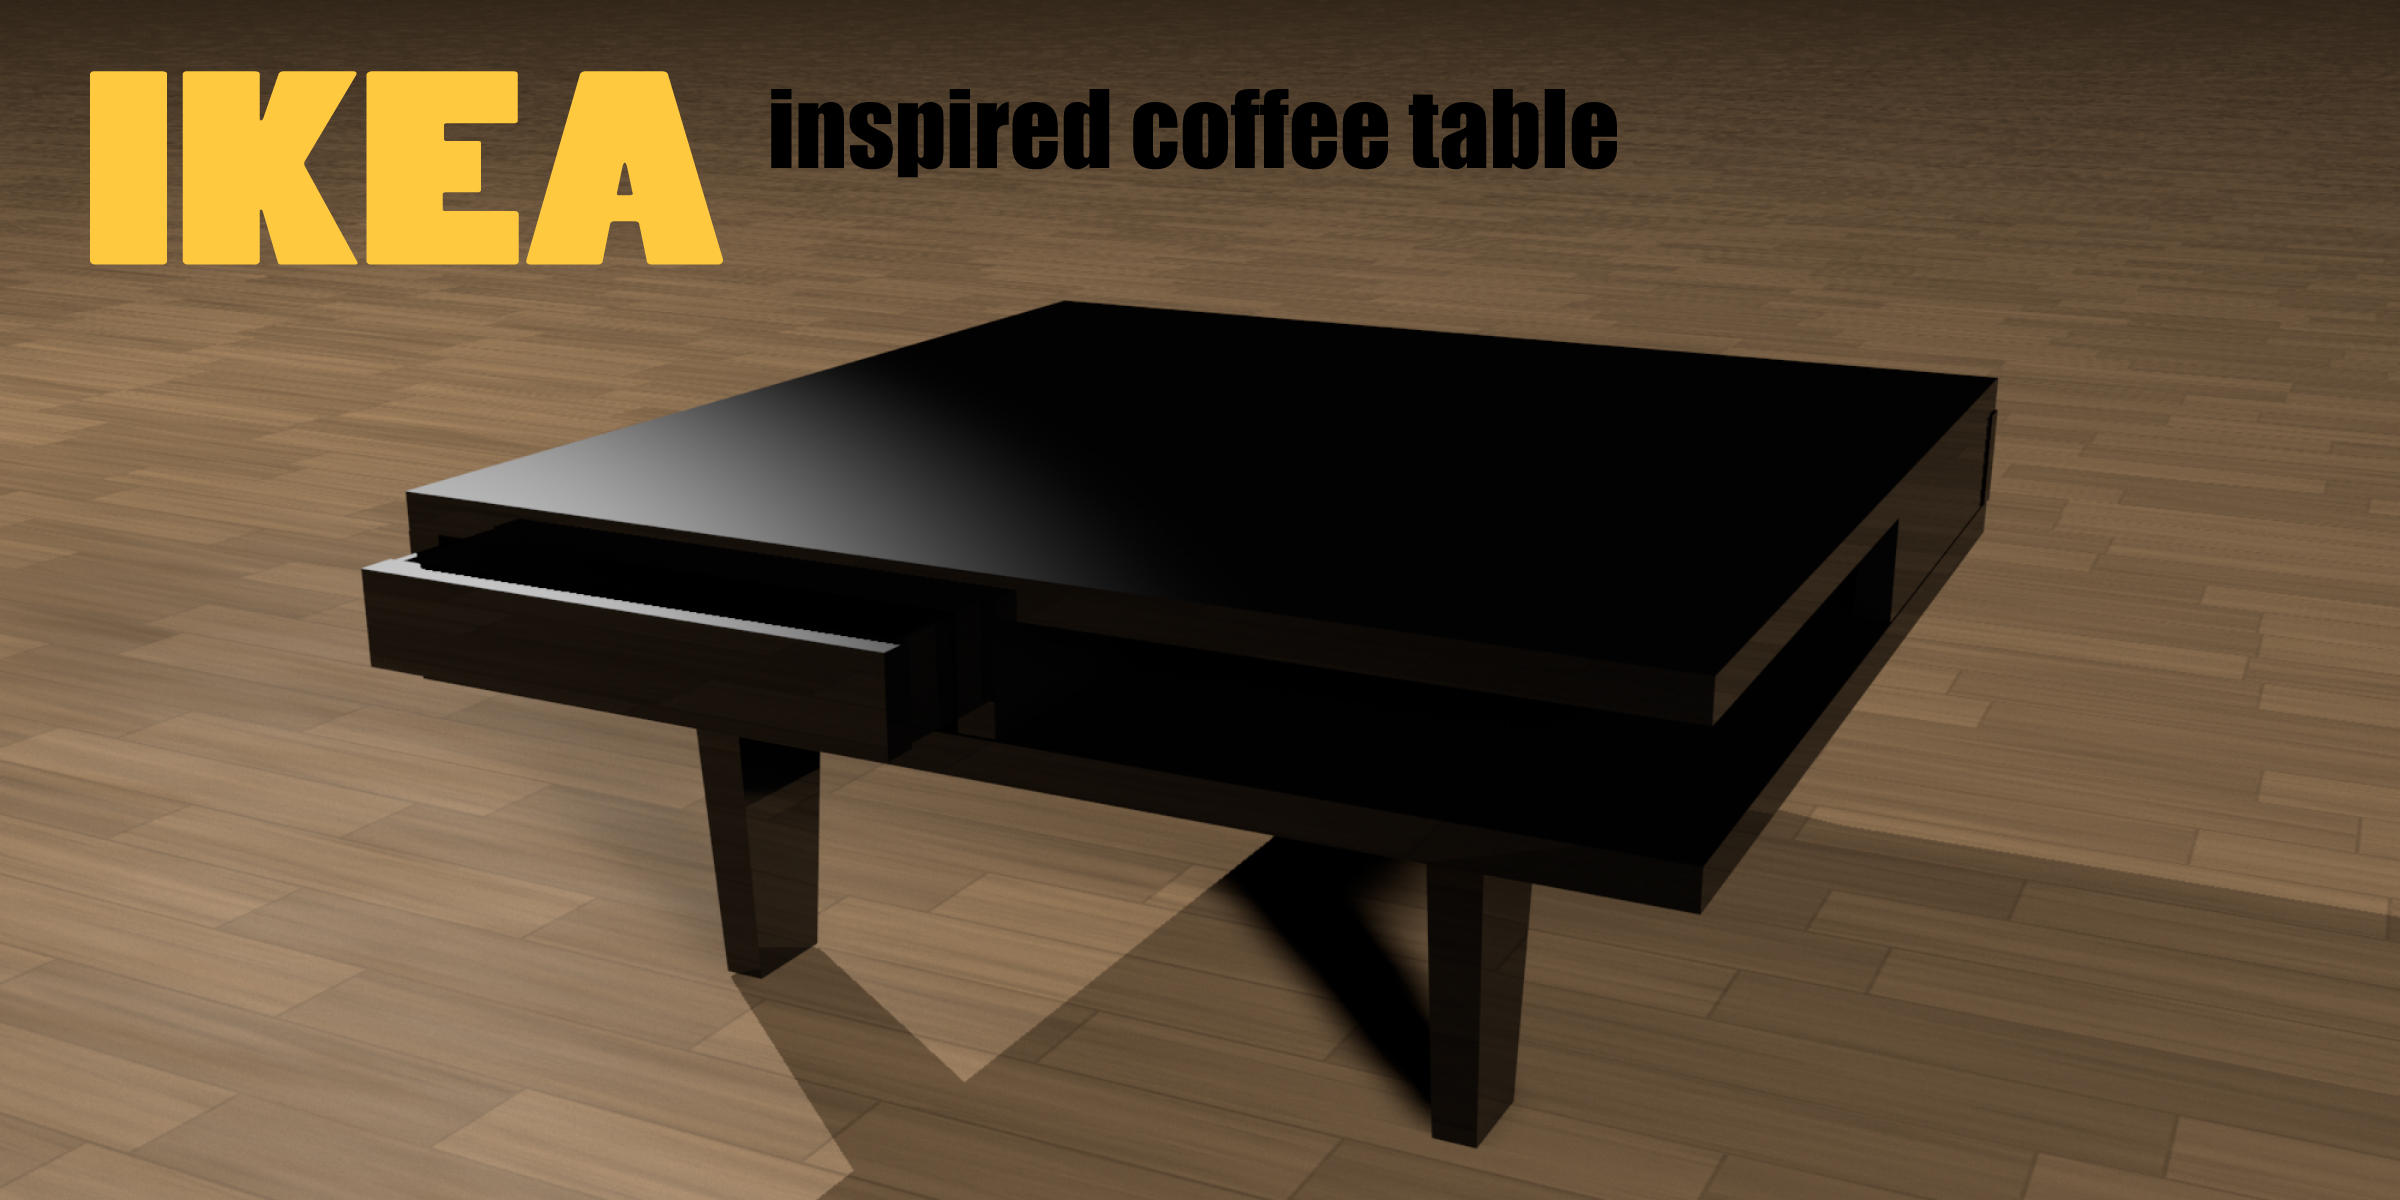 IKEA inspired coffee table by Integritydesign on DeviantArt